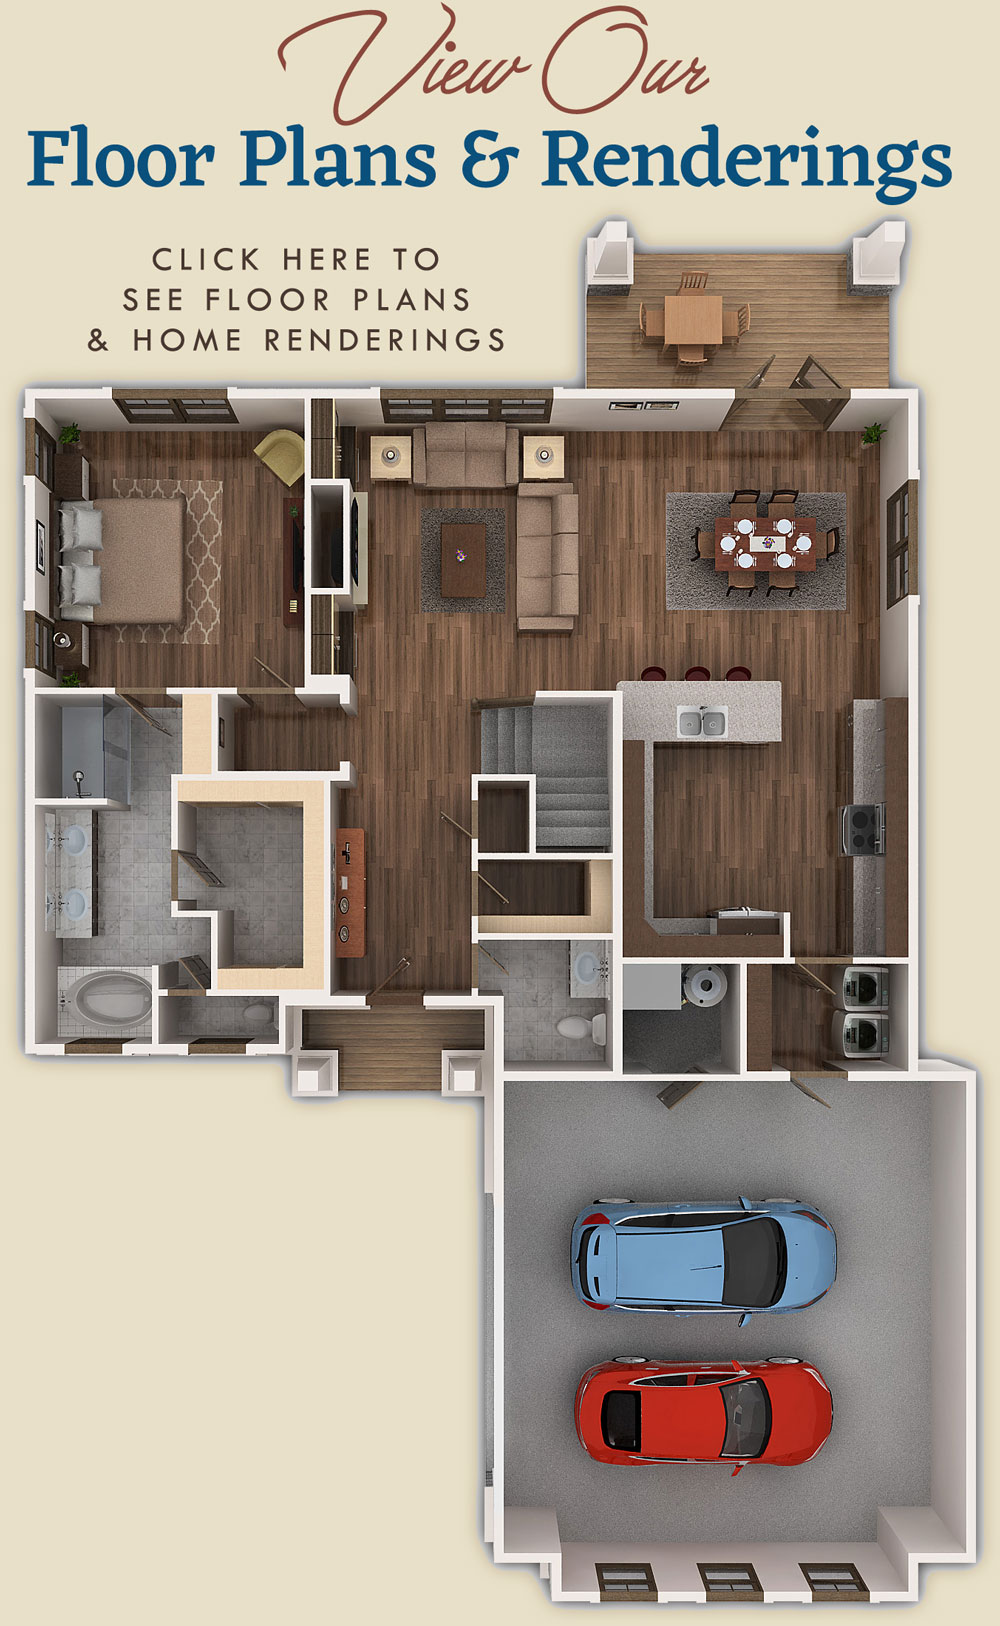 Click here to view floor plans, home renderings and amenities of our new homes South Walton / Freeport